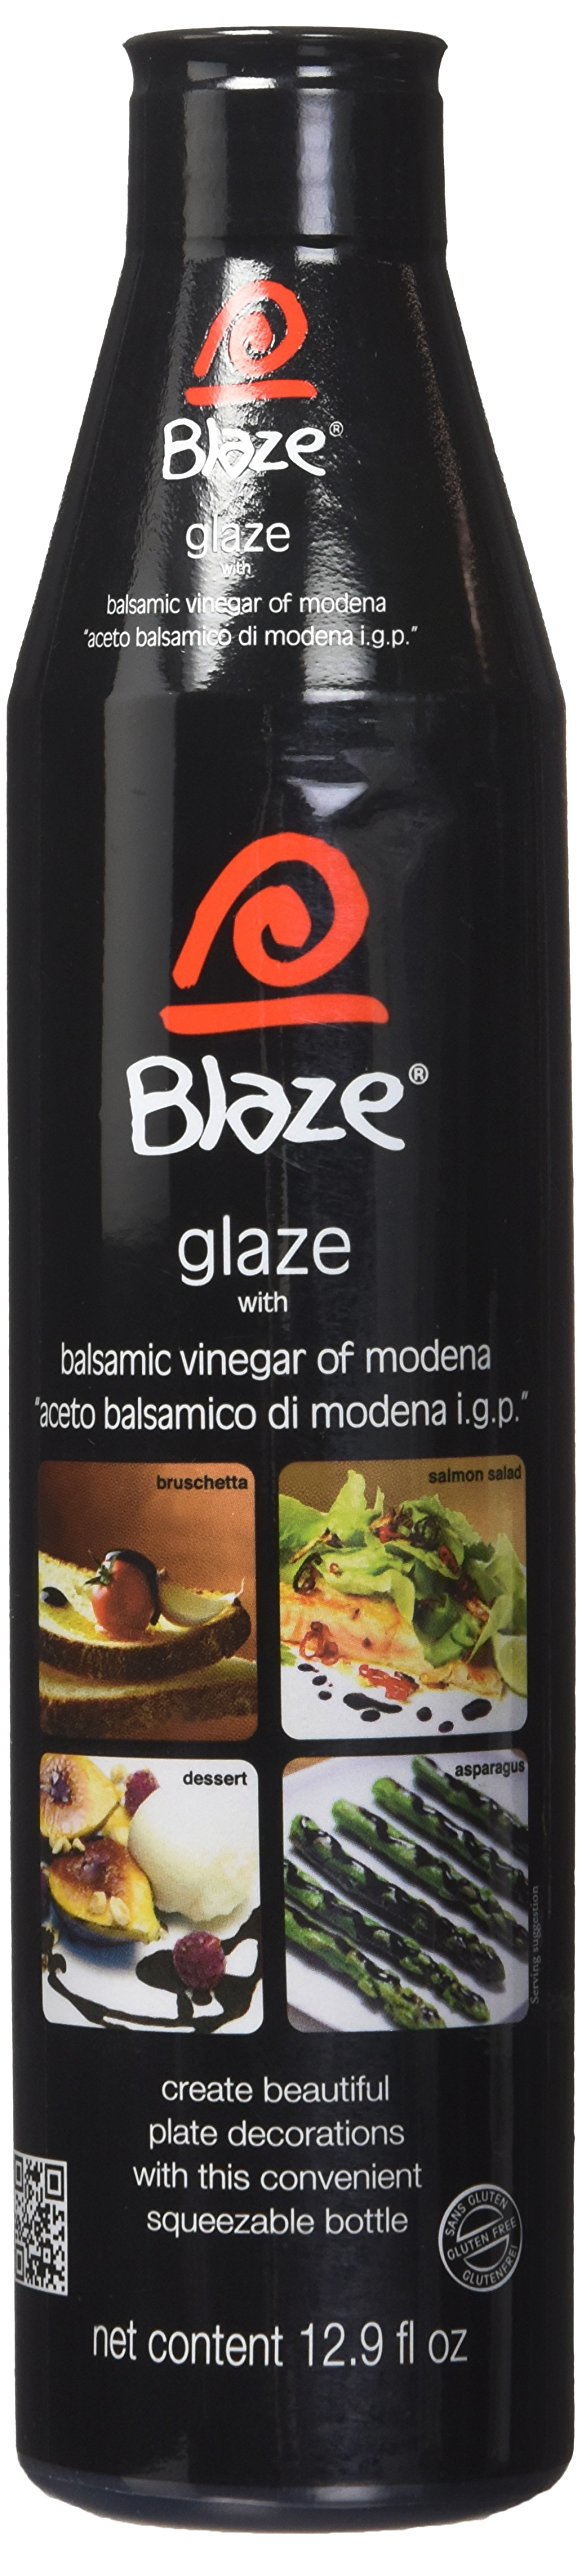 Acetum Blaze Balsamic Glaze 12.9 oz Each (Pack of 2) by Acetum